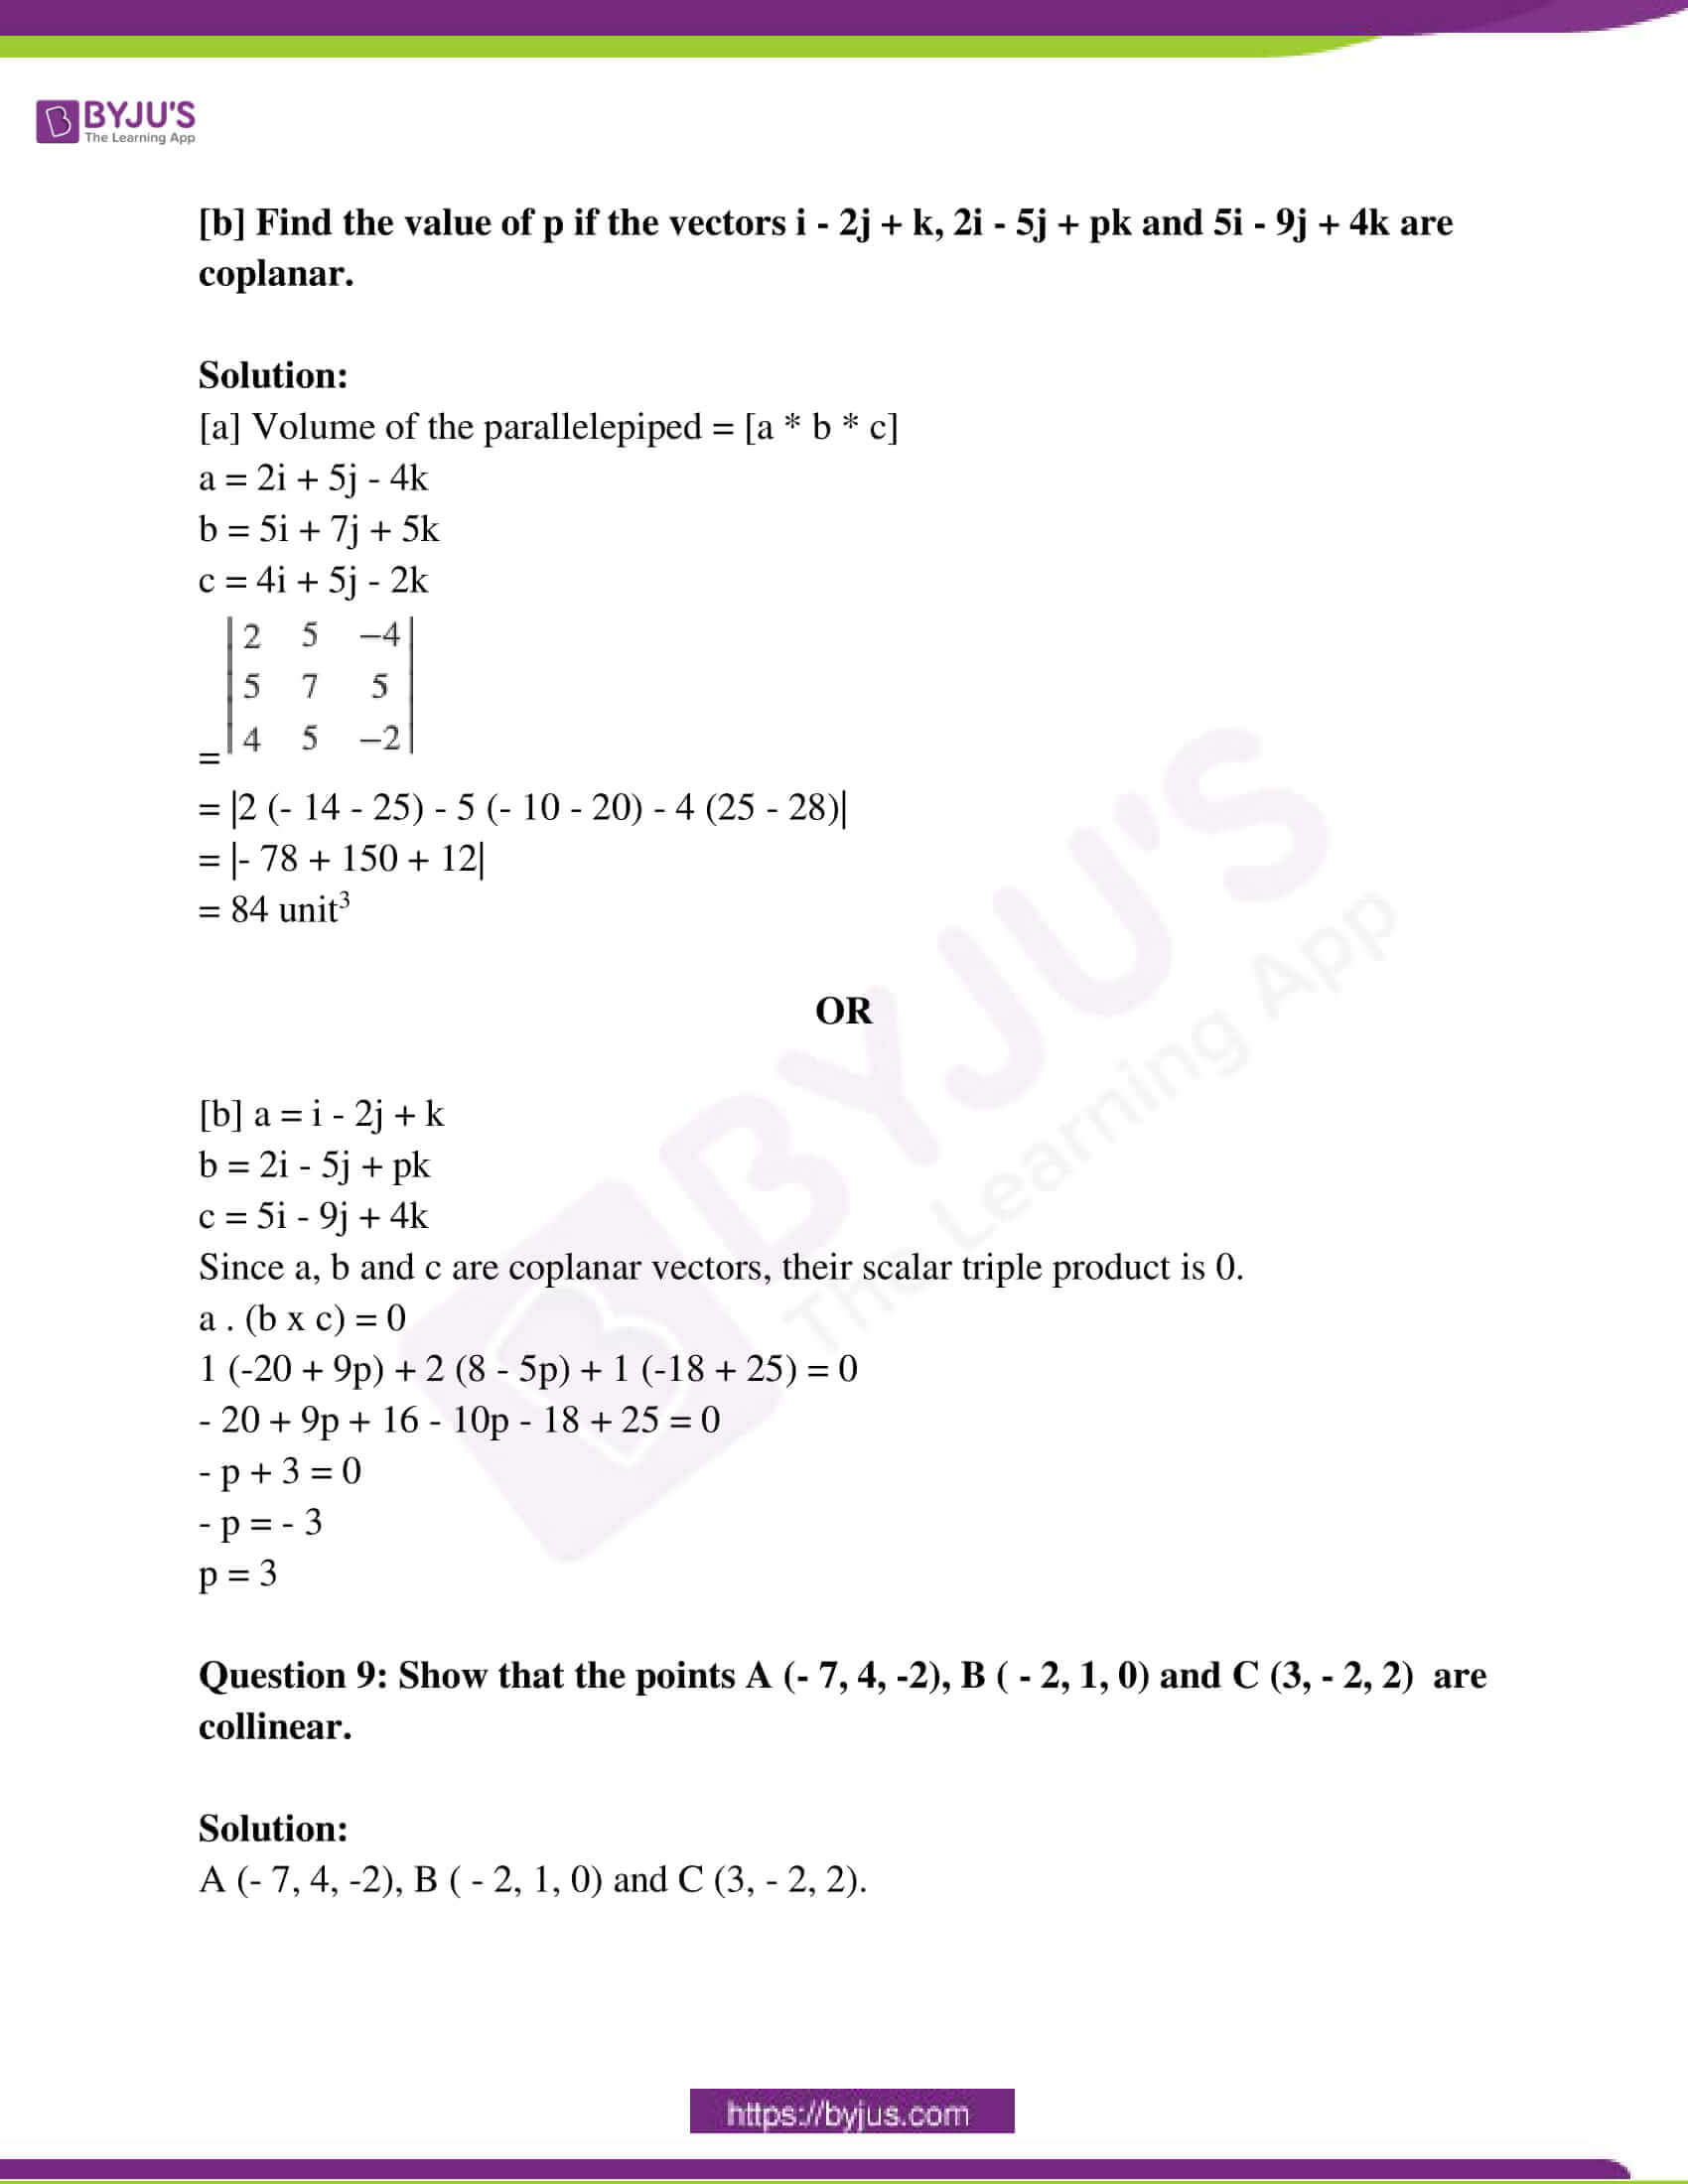 maharashtra class 12 exam question paper sol march 2019 04